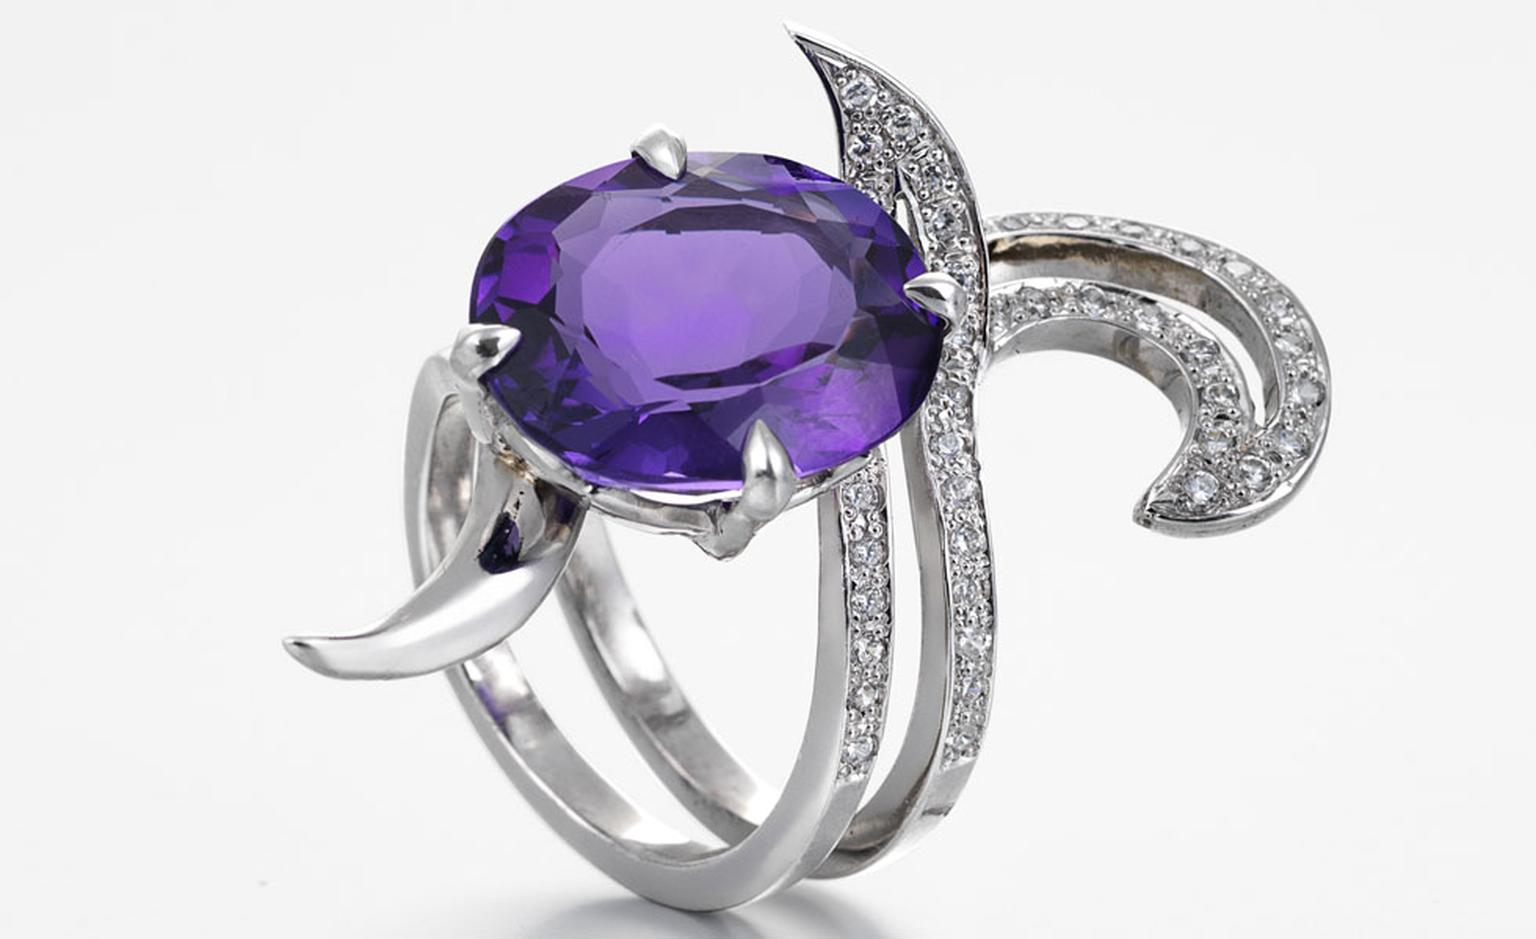 Deadly Nightshade Amethyst Ring, 18ct white gold ring set with Amethyst and Diamonds by Alexander Davis £3,095